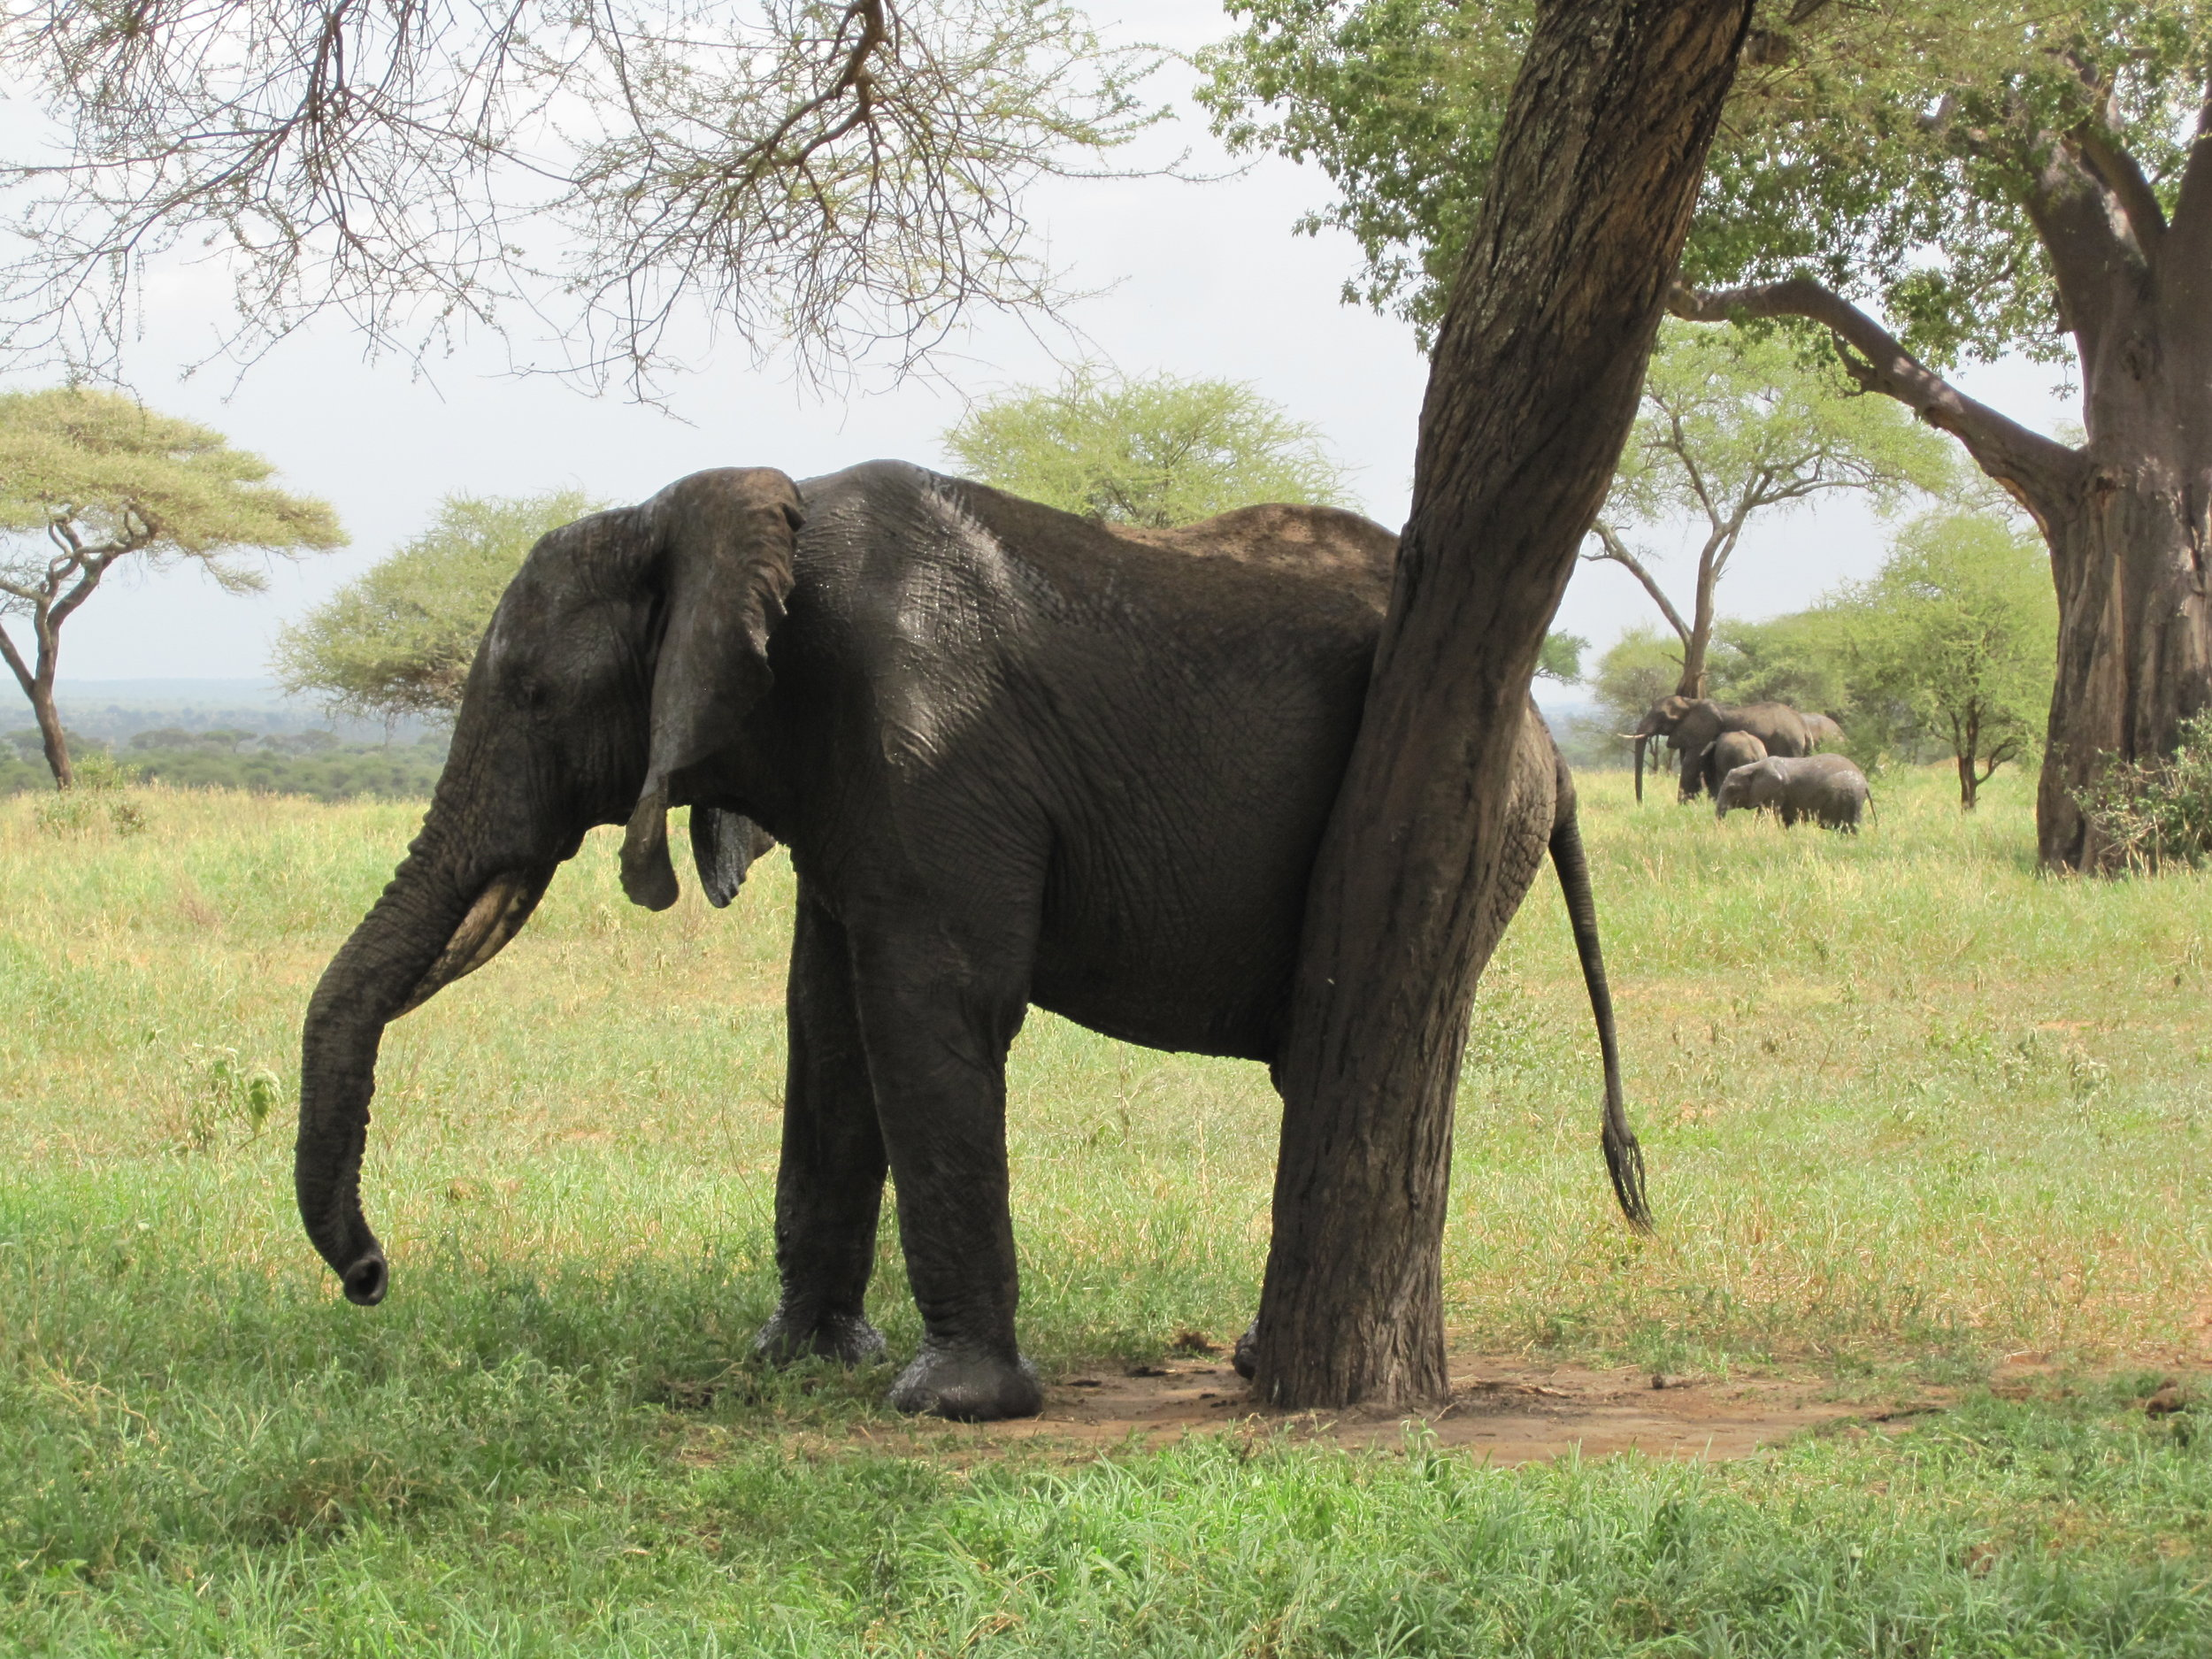 Elephant scratching his butt on a tree.